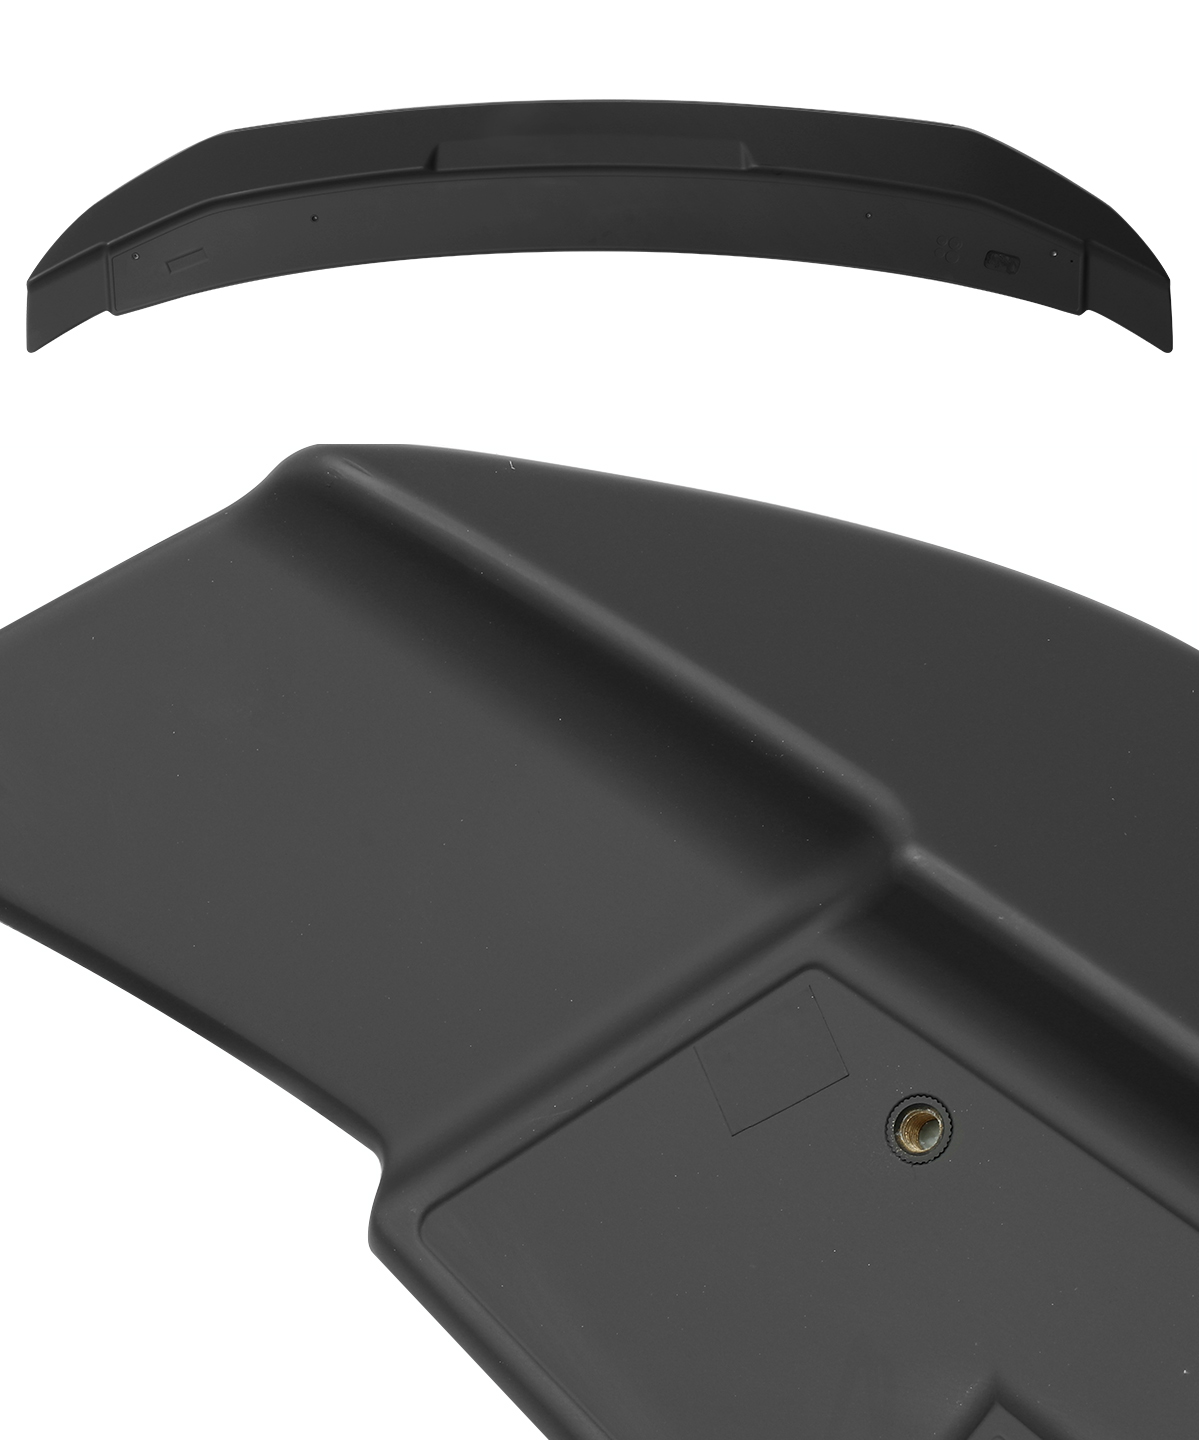 For 10-14 Ford Mustang Shelby GT500 Style Matte Black Rear Trunk Spoiler Wing